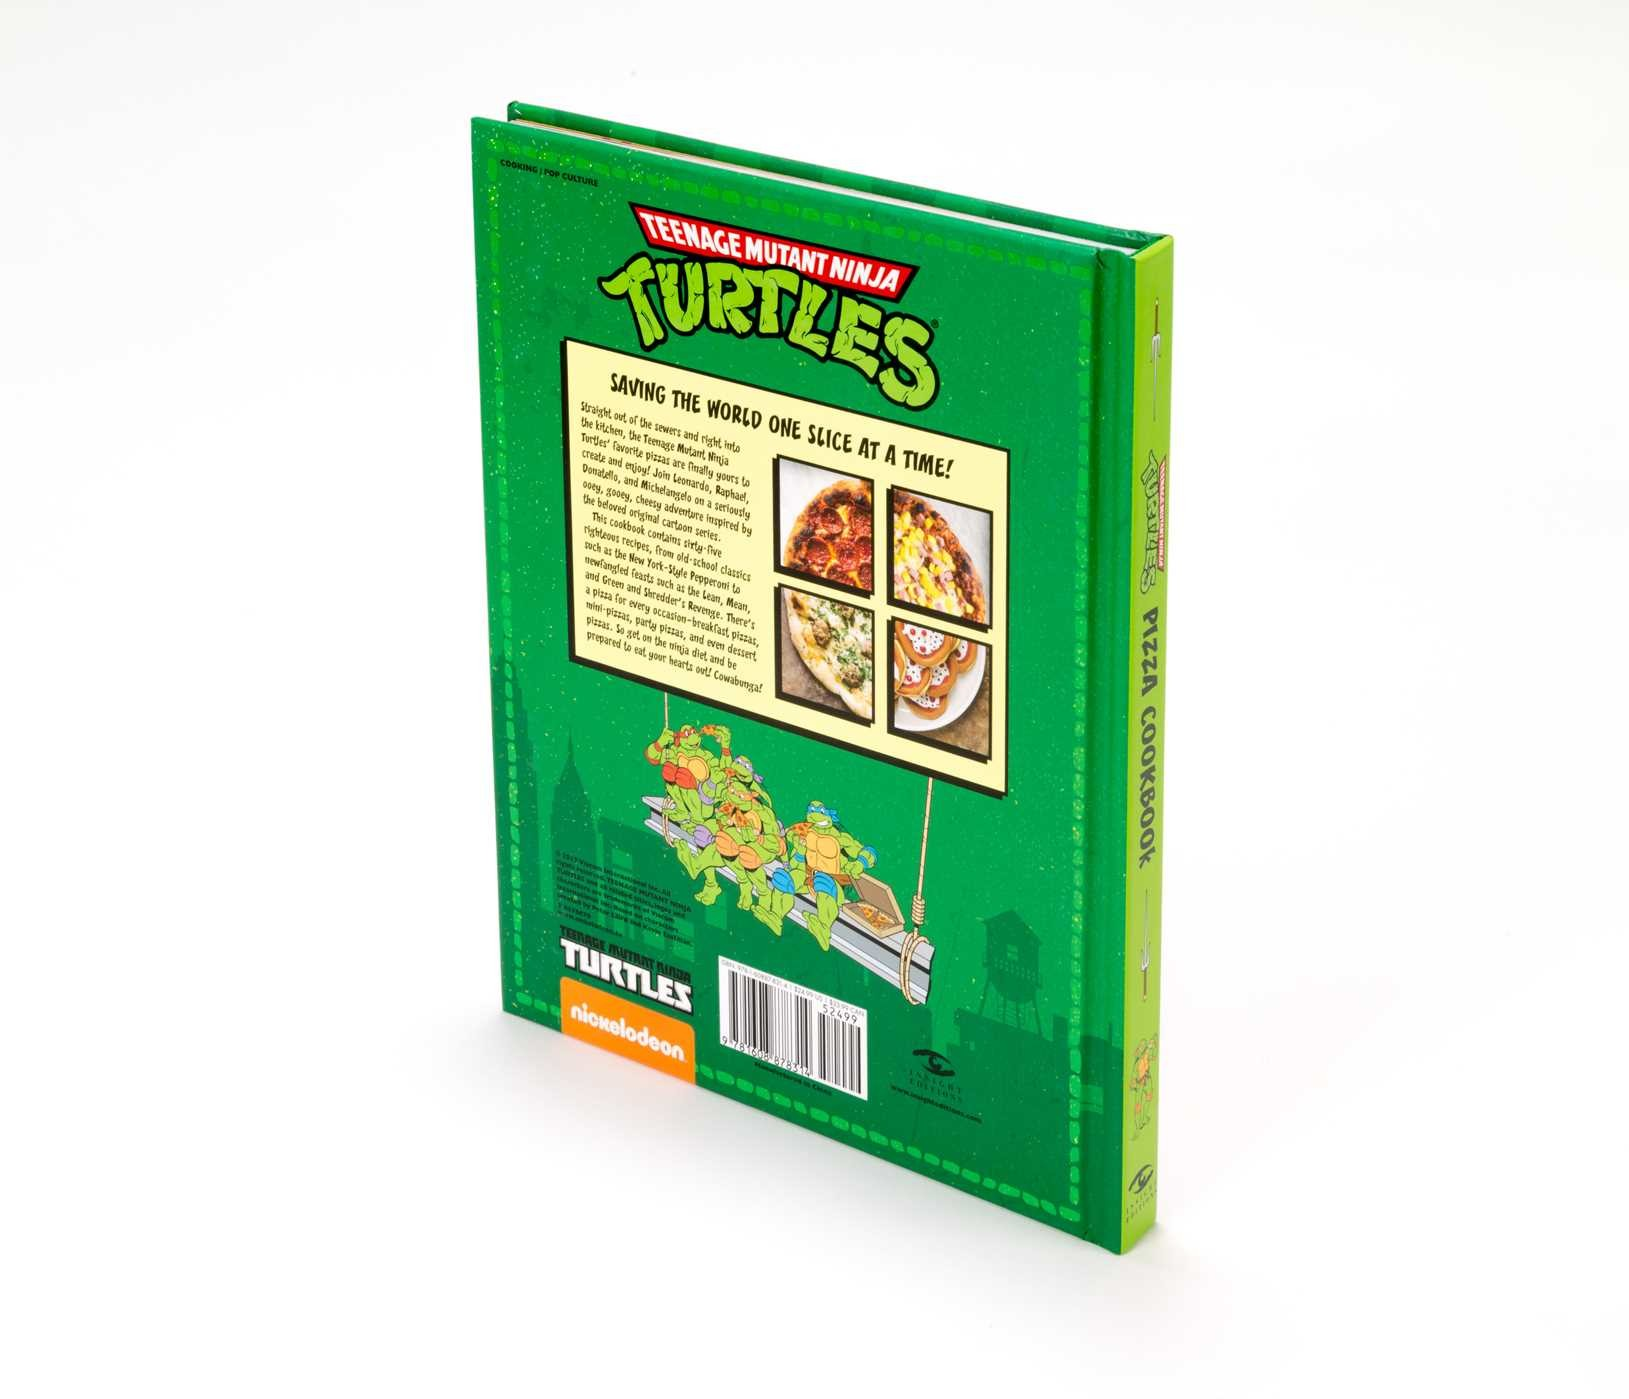 The teenage mutant ninja turtles pizza cookbook 9781608878314.in06